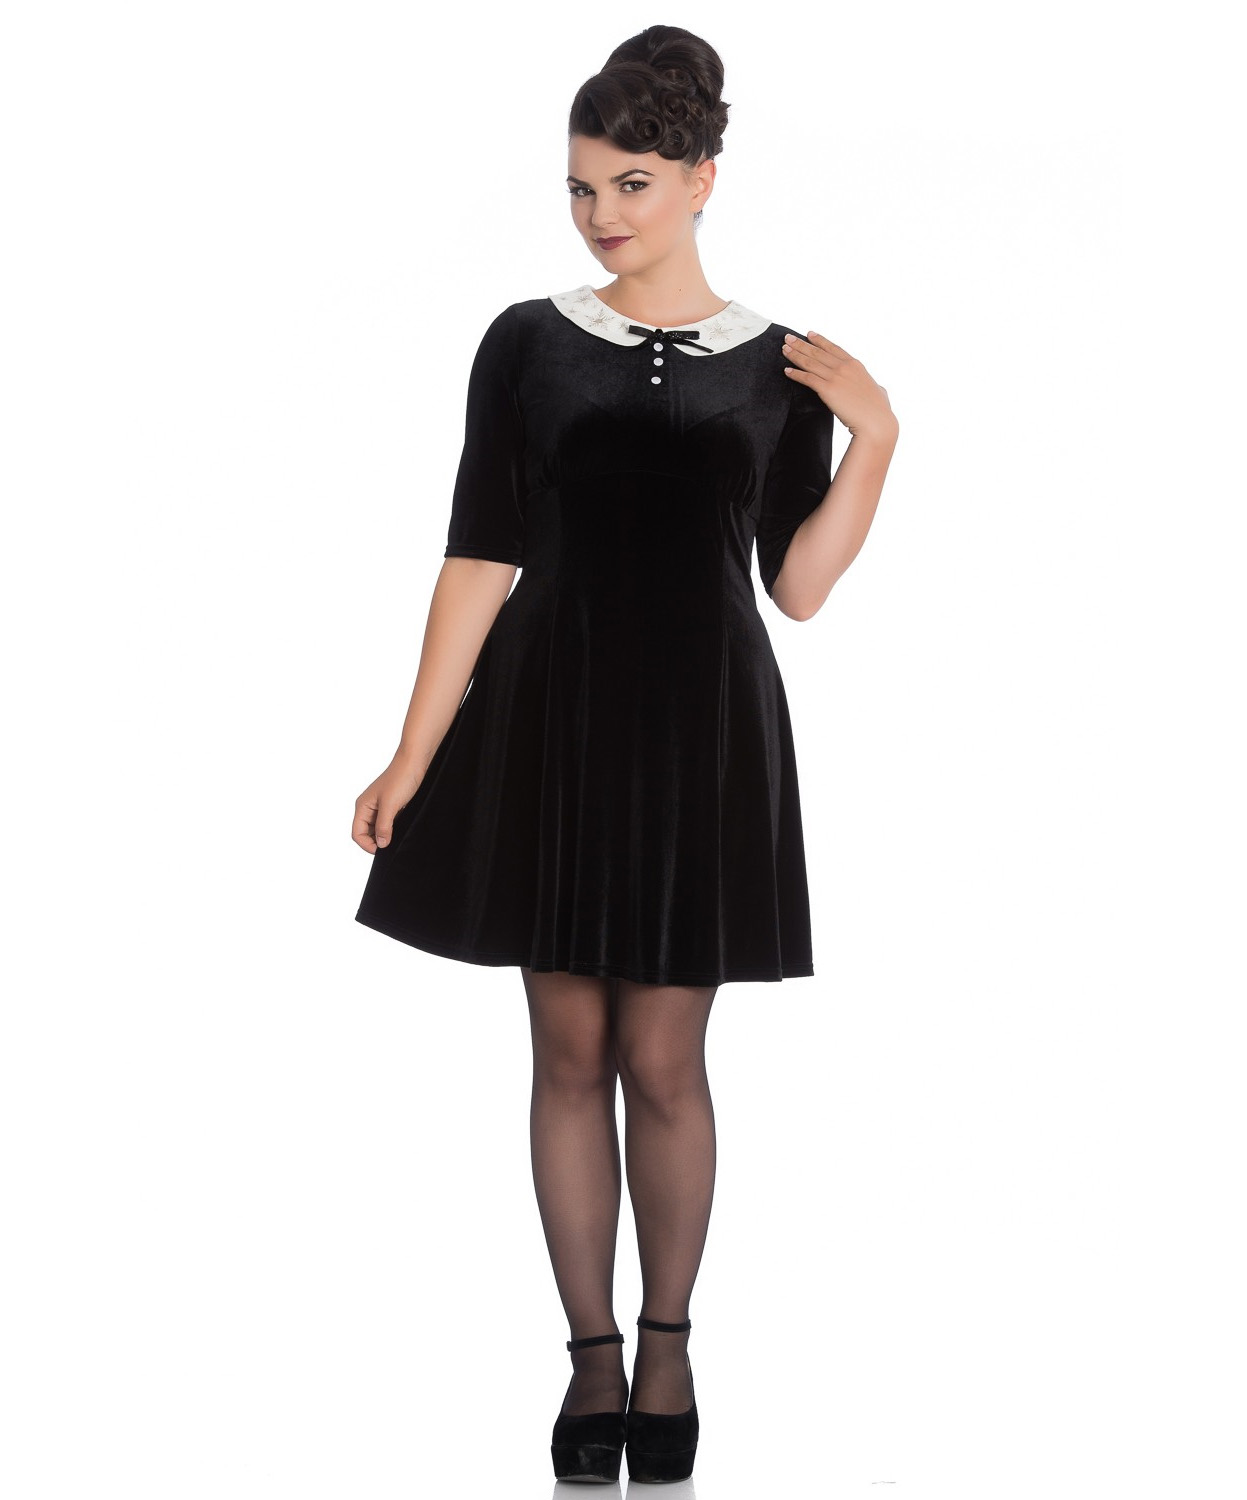 Hell-Bunny-Mini-Skater-Dress-Festive-Christmas-SNOWY-Black-Snowflakes-All-Sizes thumbnail 11